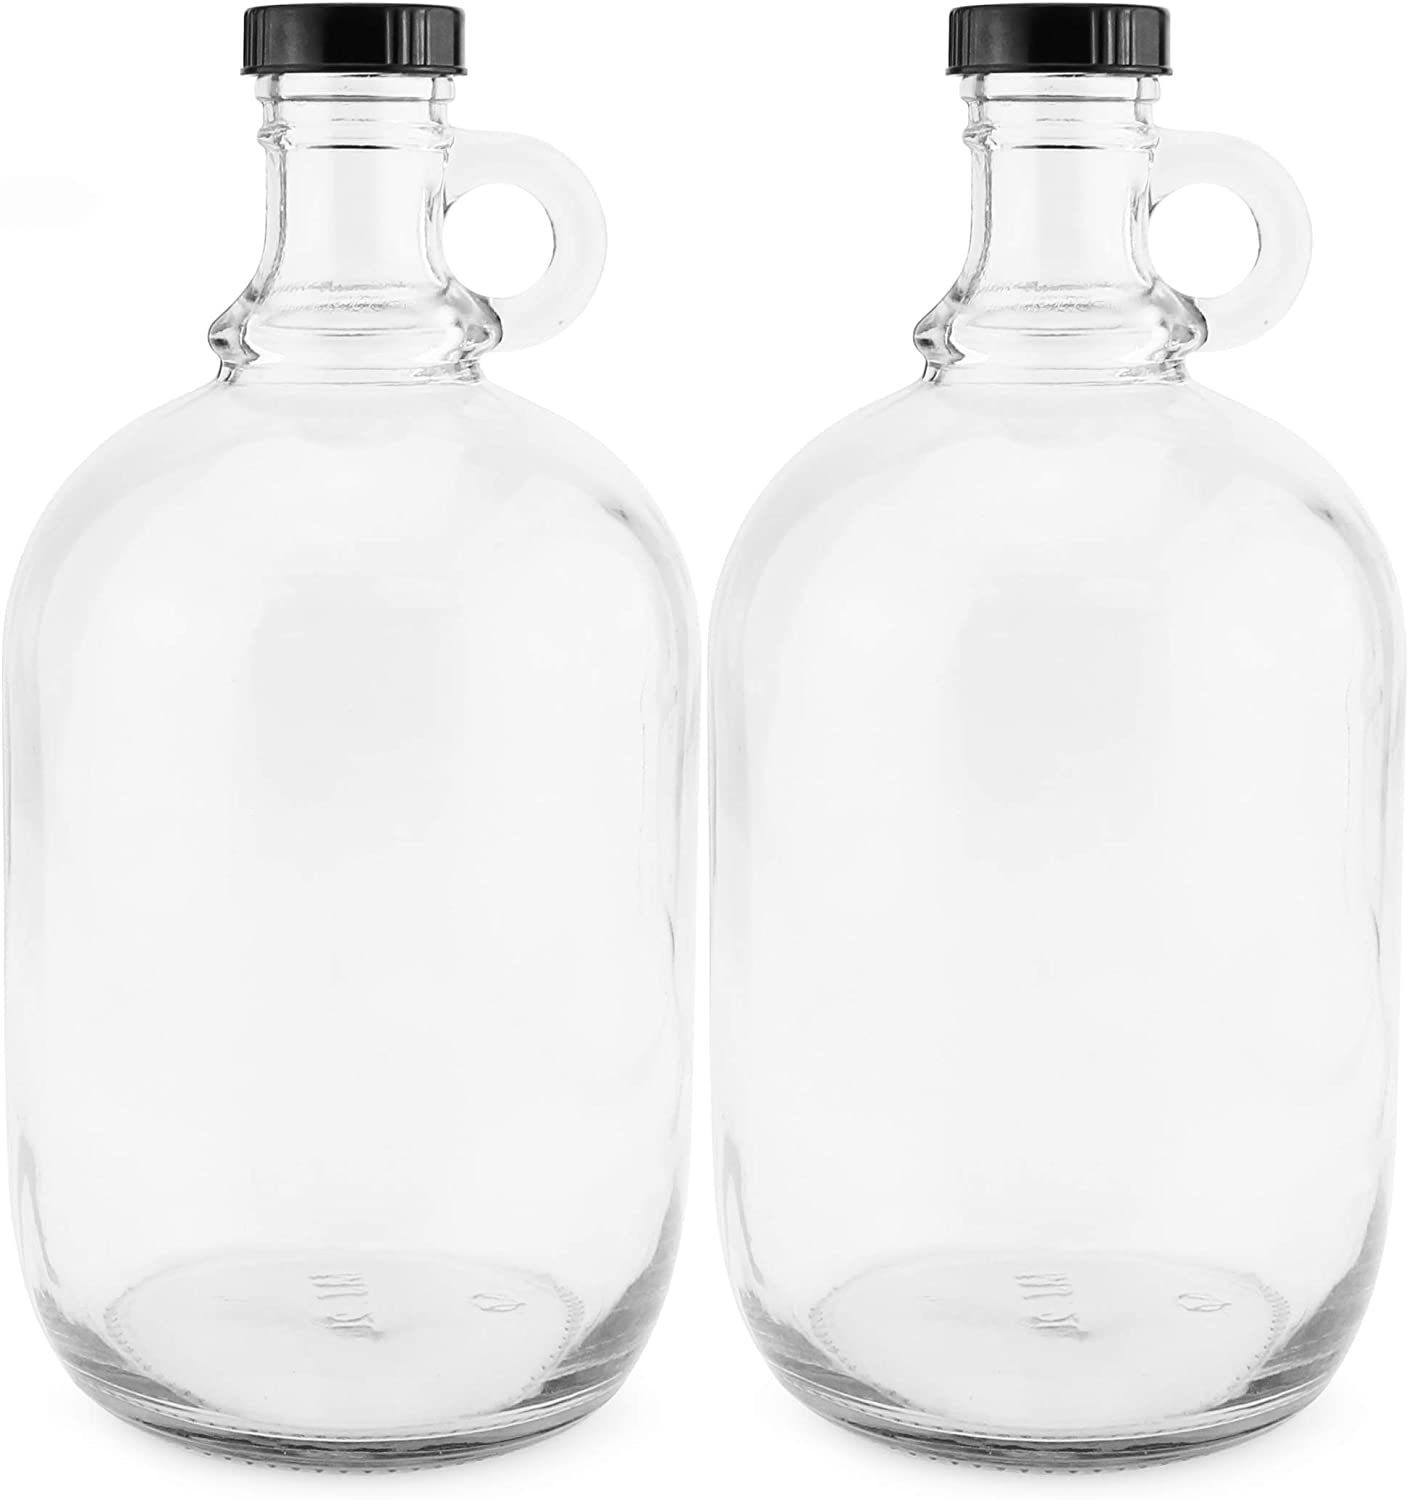 Amazon Com 64 Ounce Half Gallon Clear Glass Kombucha Growler Jugs W Polycone Phenolic Lids 2 Pack Great For Home Brew Distilled Water Cider More Kitchen Dining